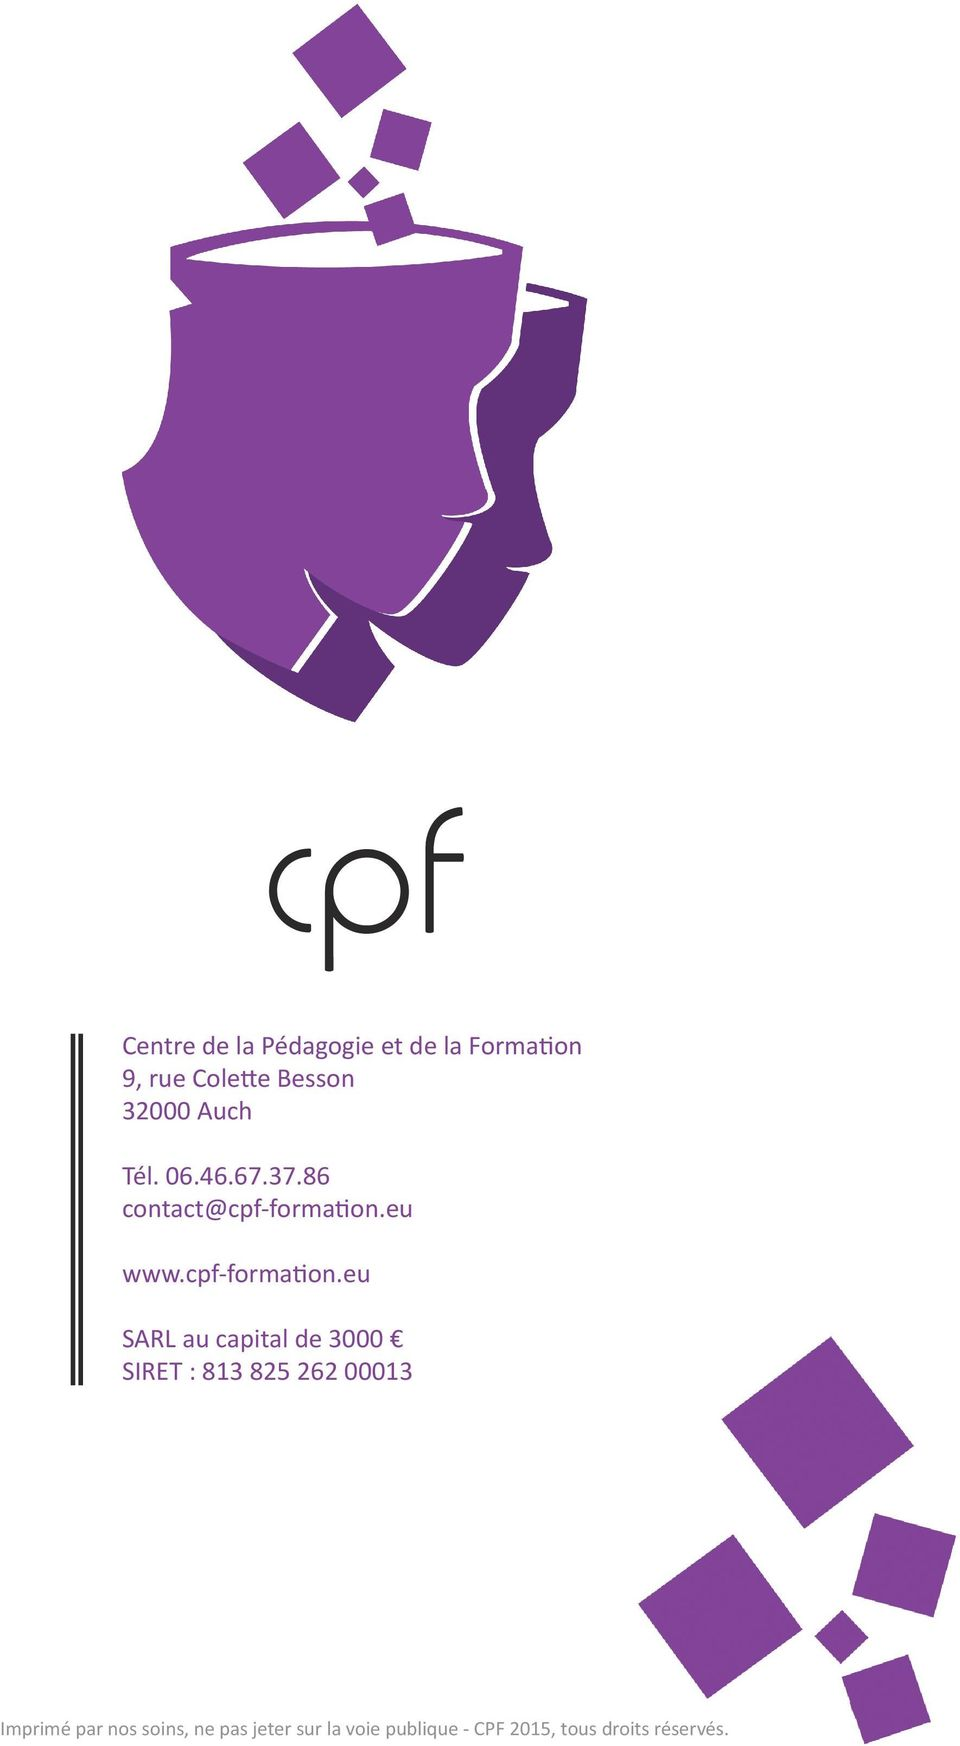 cpf-formation.